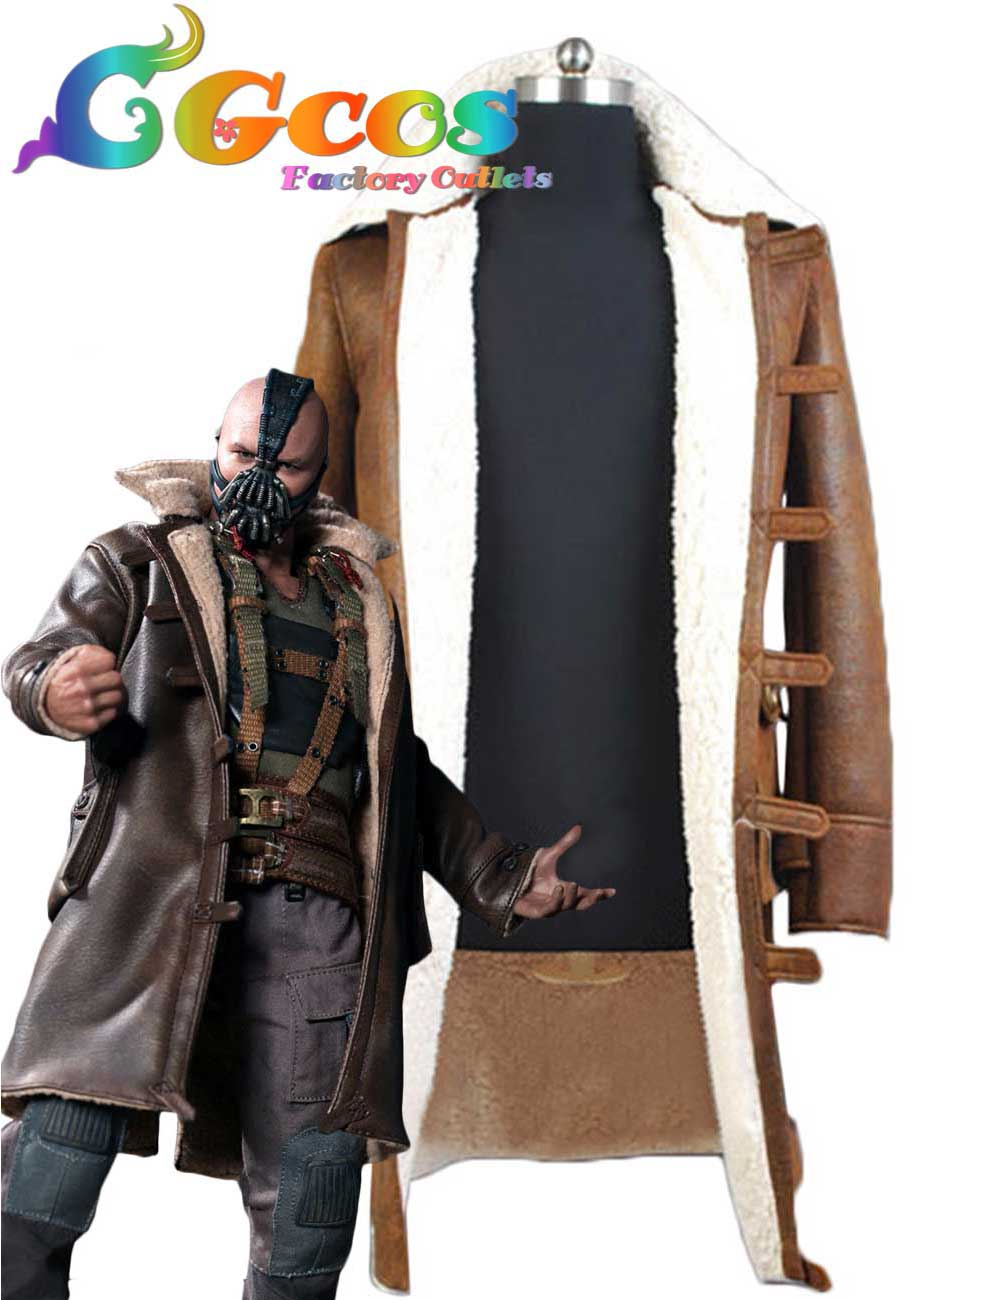 cgcos hot free shipping cosplay costume batman the dark knight rises bane halloween christmas party new - Halloween Costumes Bane